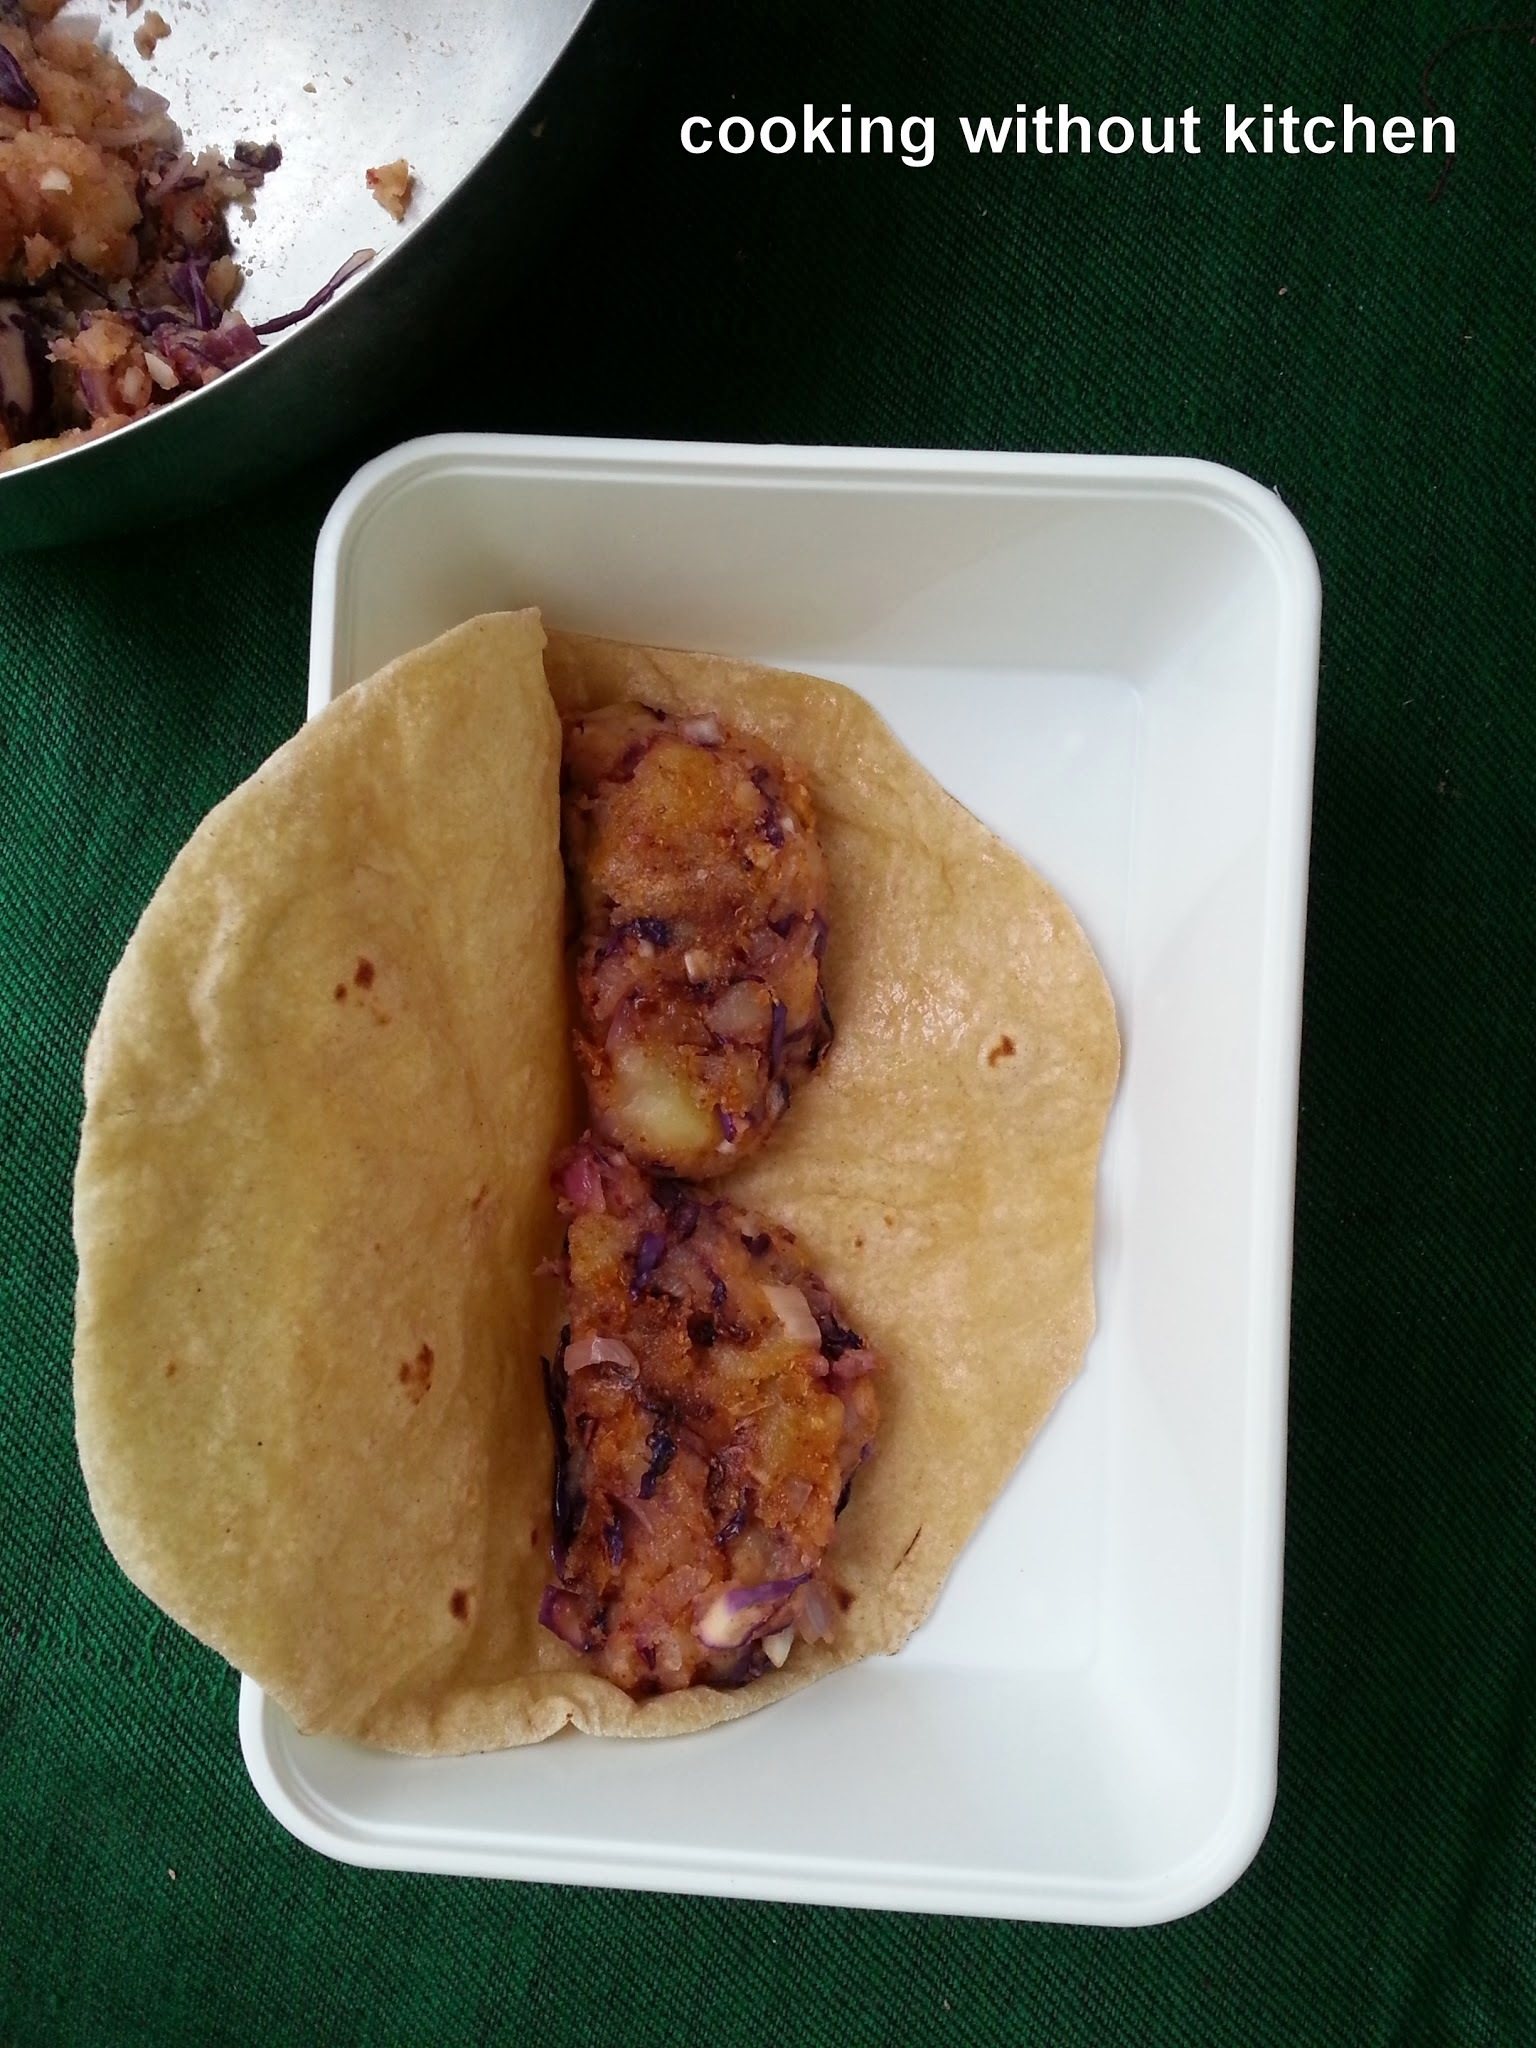 Instant Potato patty with poha or red cabbage